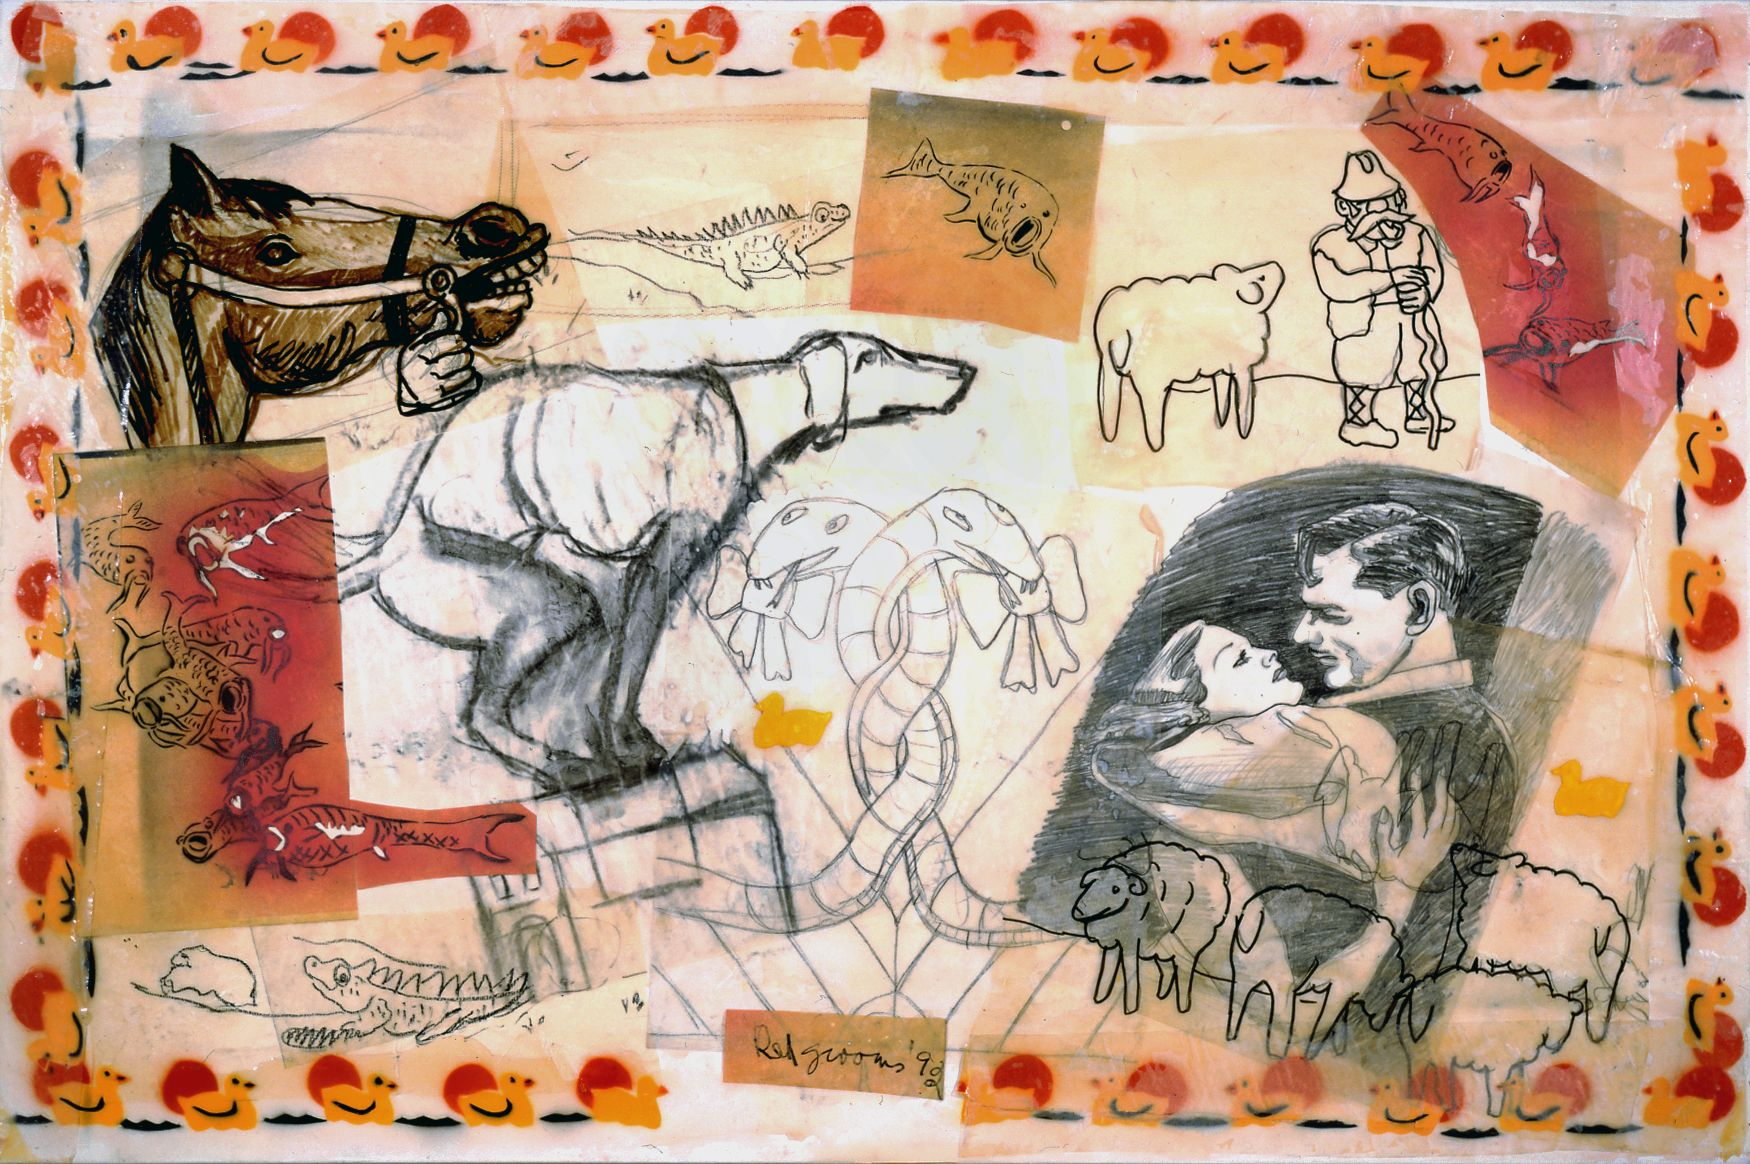 Red Grooms, Animal Instincts, 1992, collage and mixed media, 30 x 46 inches